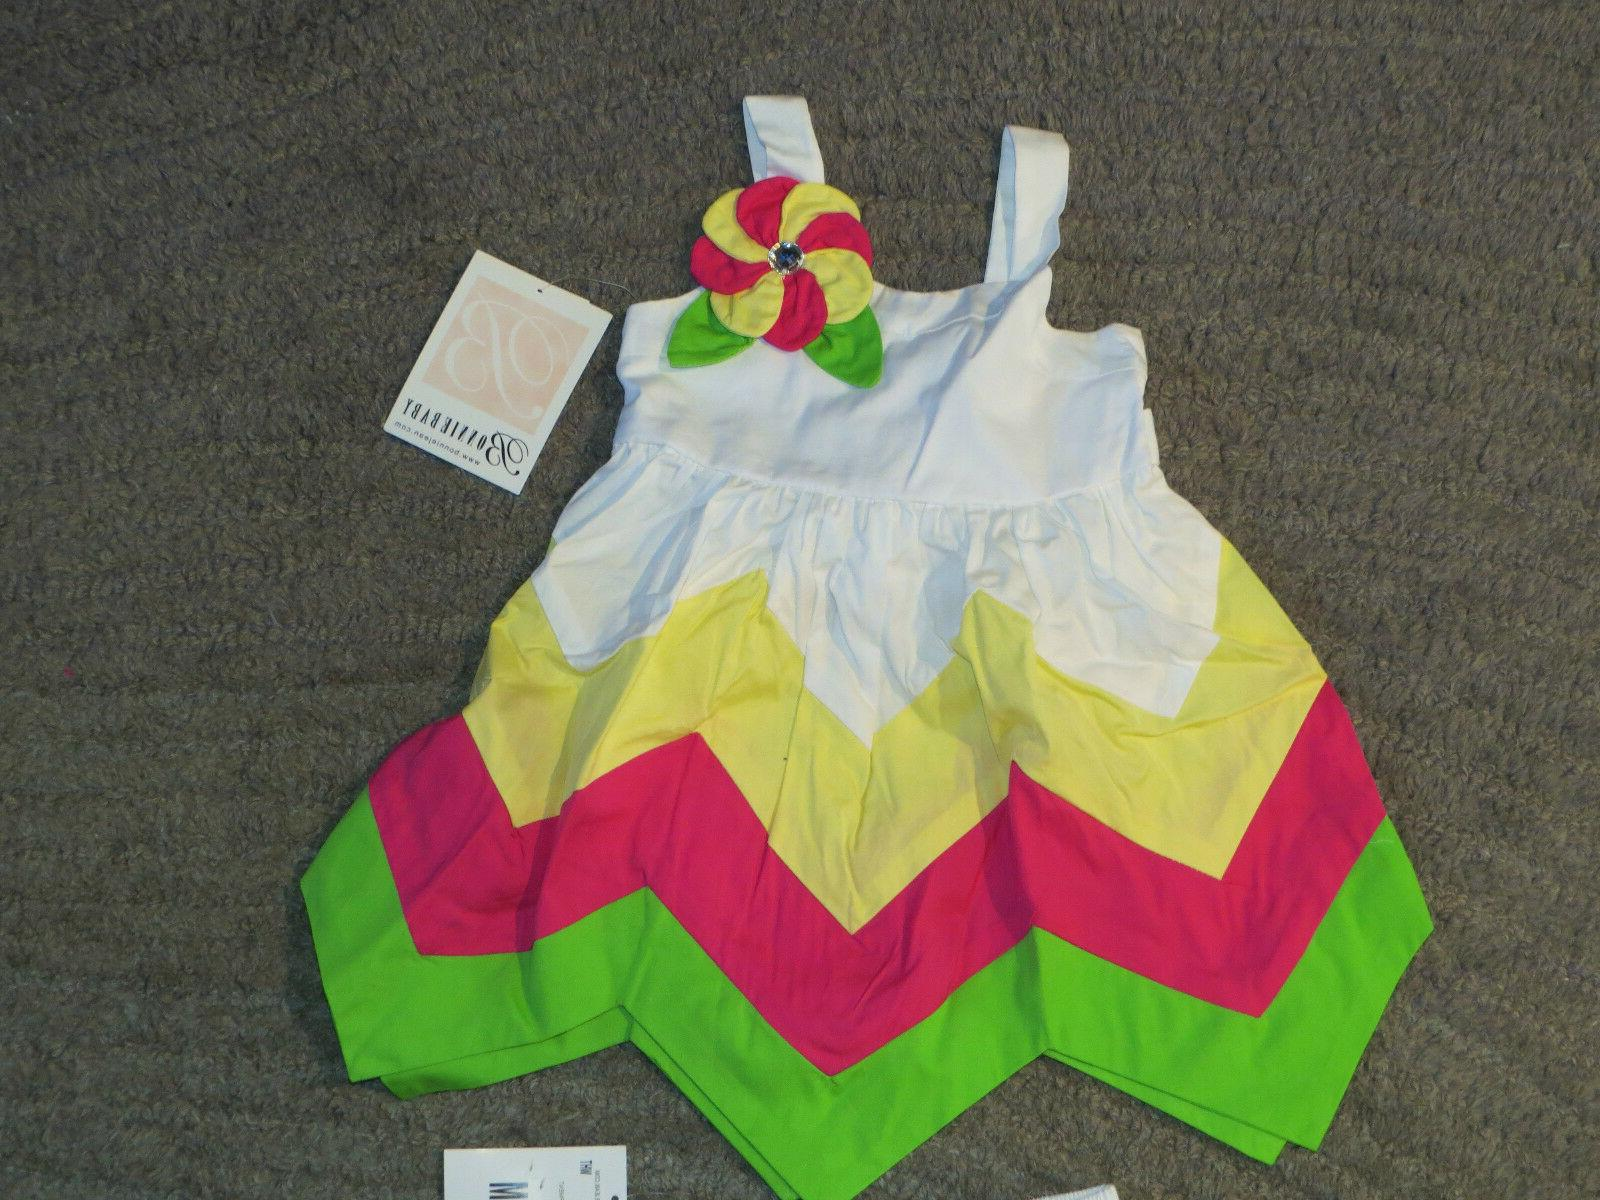 Bonnie 2 Outfit Size Months - NWT